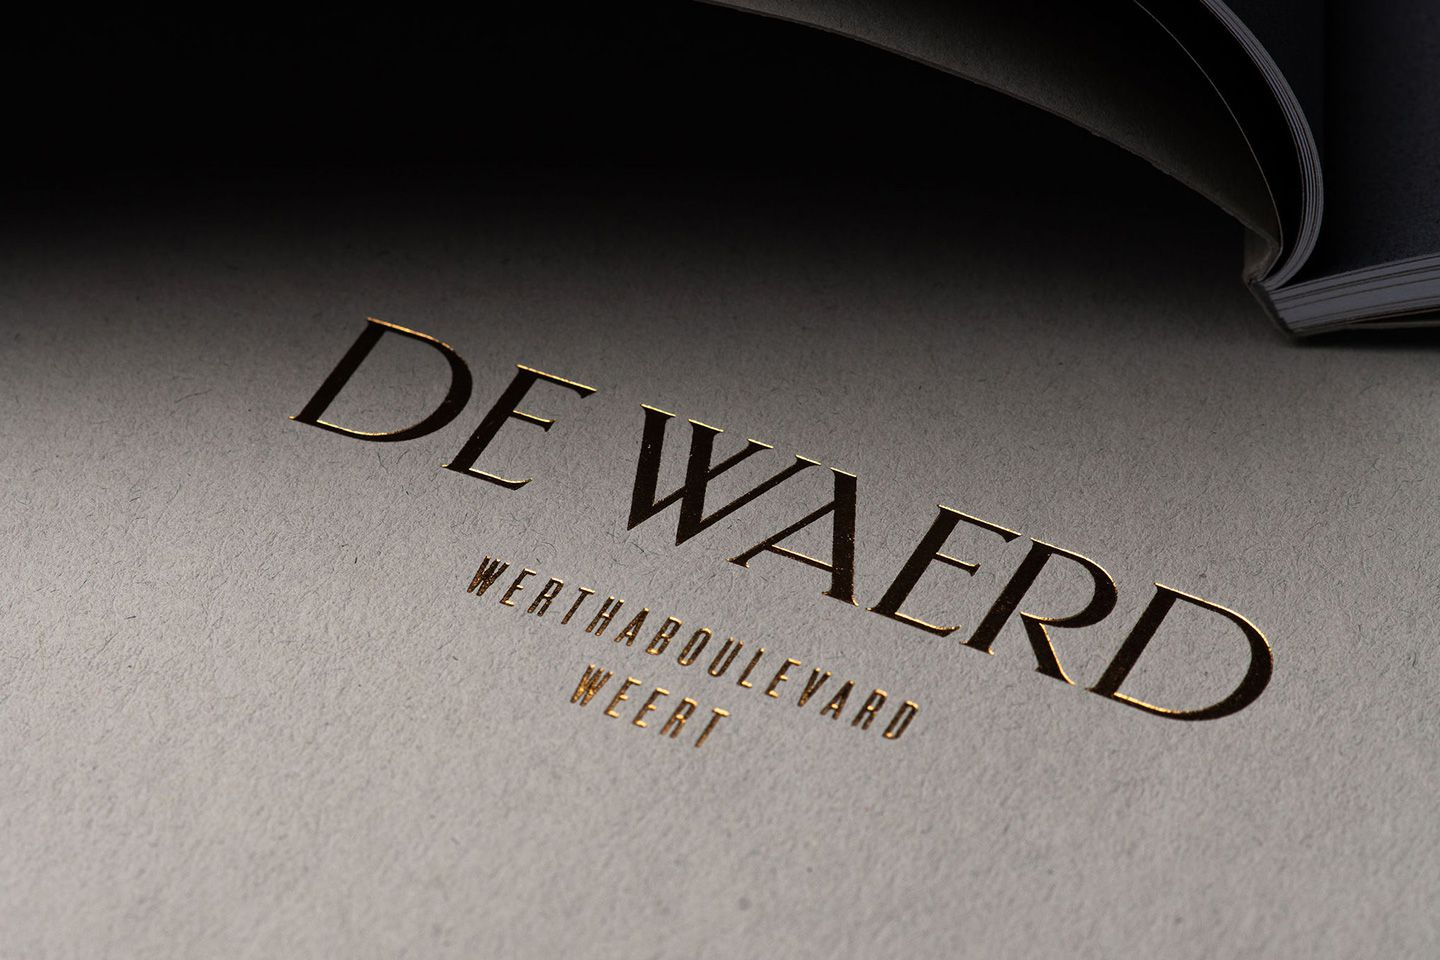 00_DeWaerd_p9website